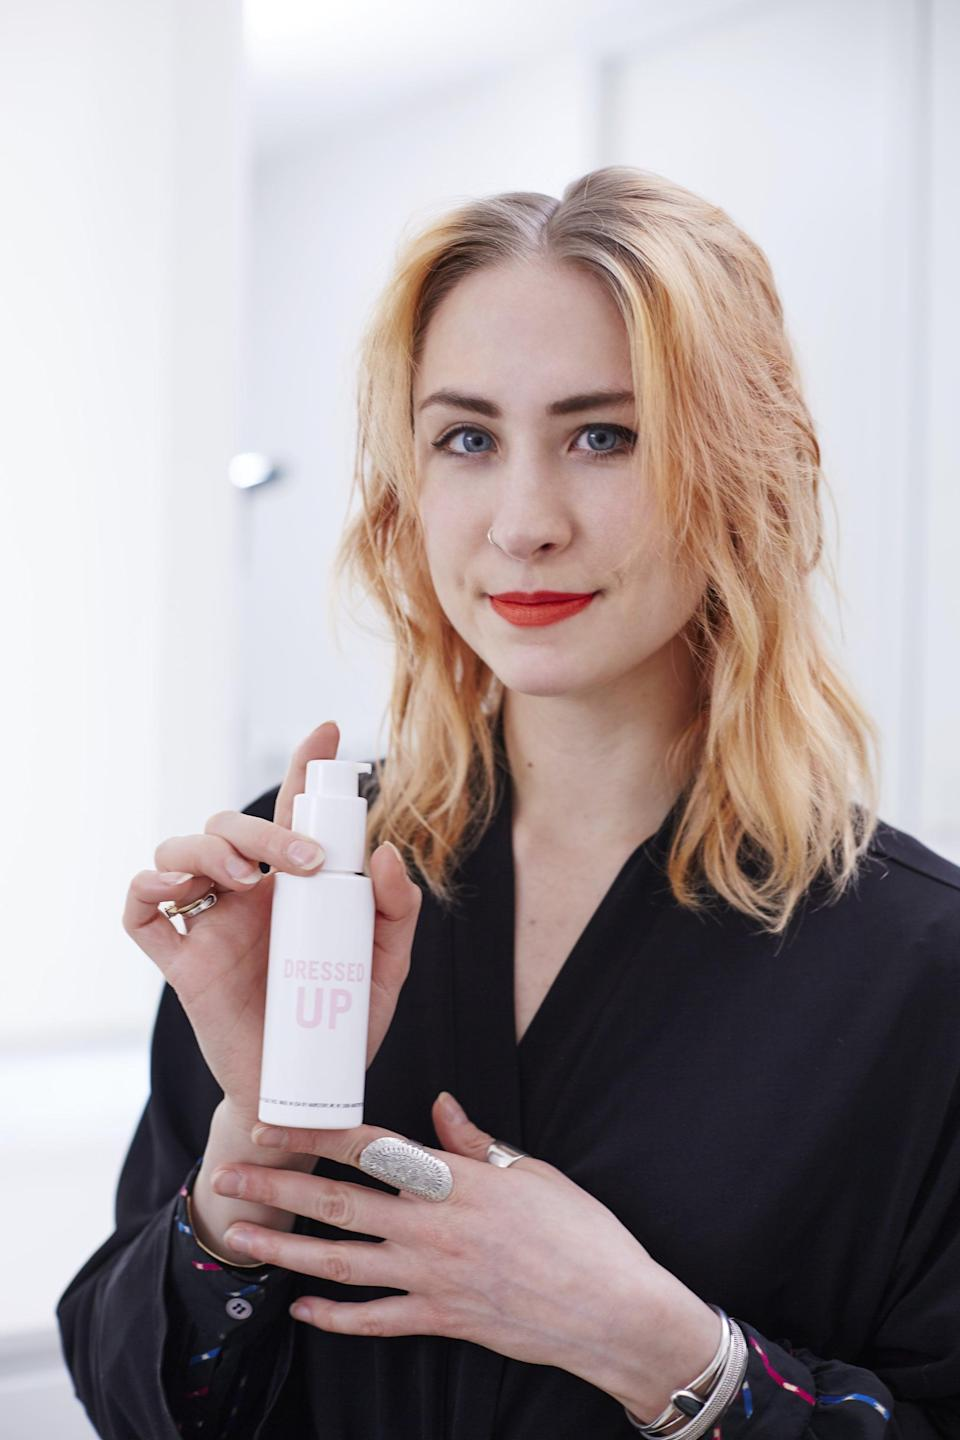 <p>Start with damp hair, but make sure it's not too wet. That can cause the style to take too long to dry and the shape of the curls won't hold.</p>